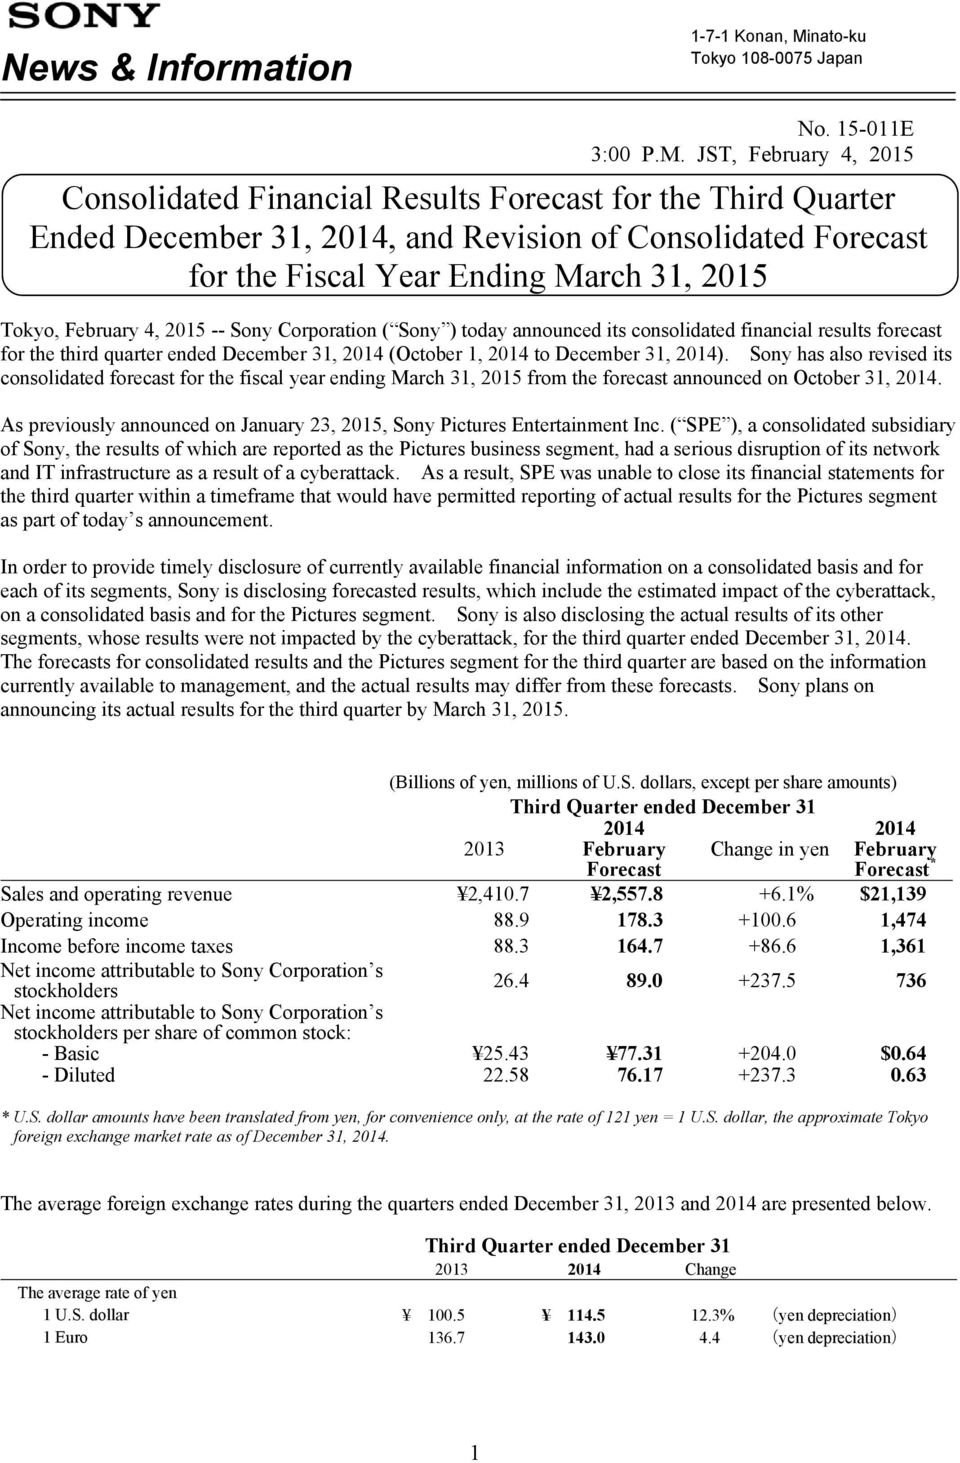 JST, February 4, 2015 Consolidated Financial Results for the Third Quarter Ended December 31, 2014, and Revision of Consolidated for the Fiscal Year Ending March 31, 2015 Tokyo, February 4, 2015 --